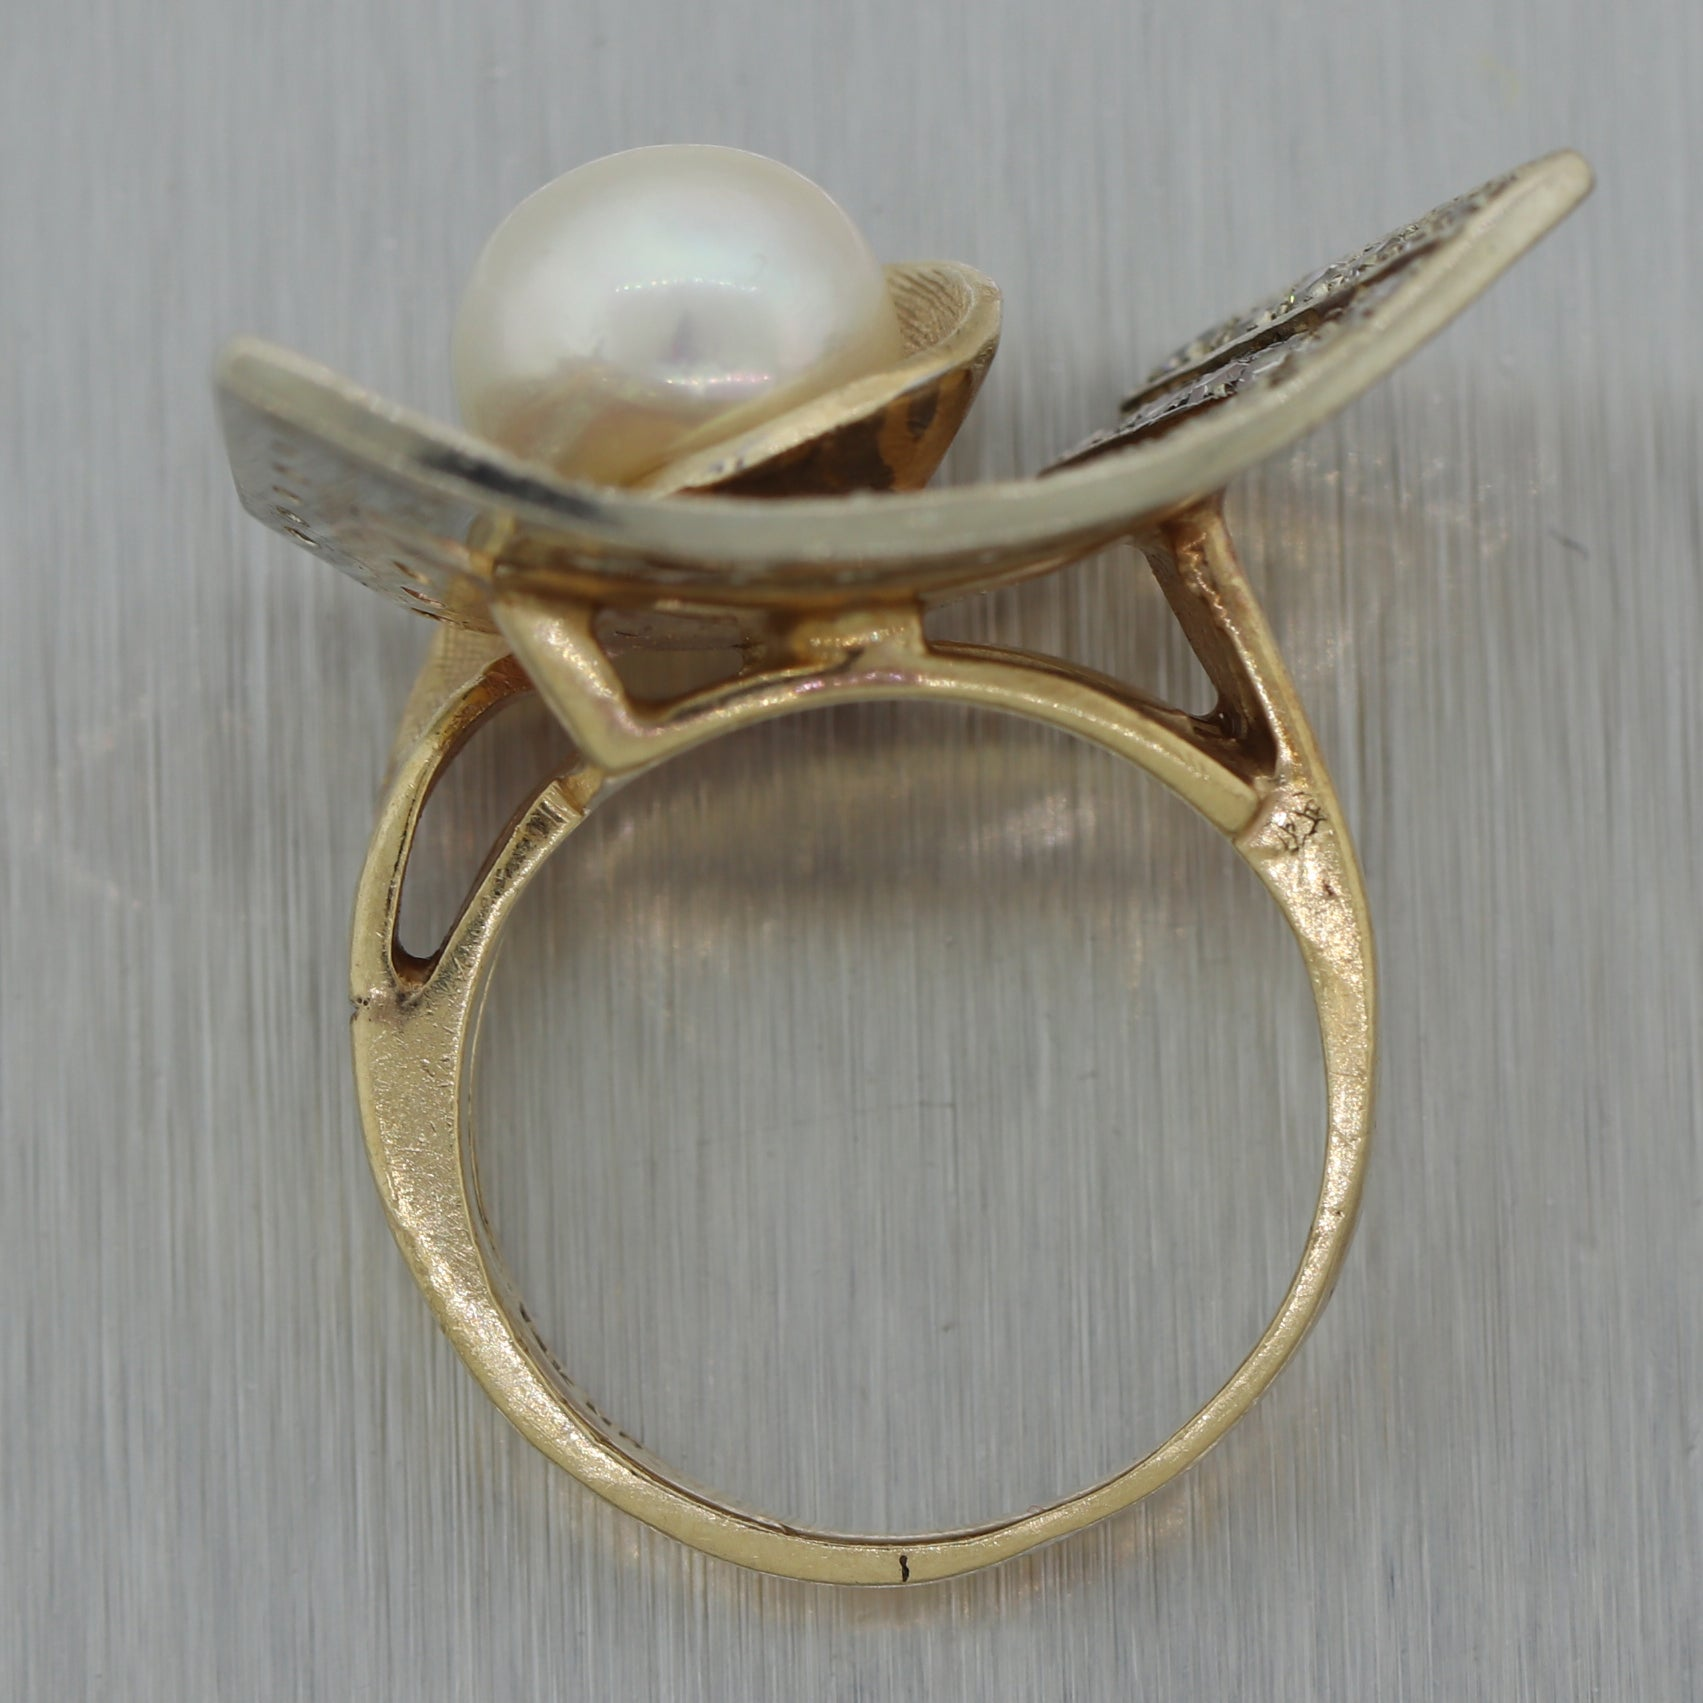 1970's Vintage Estate 14k Yellow Gold 0.75ctw Diamond & Pearl Ring